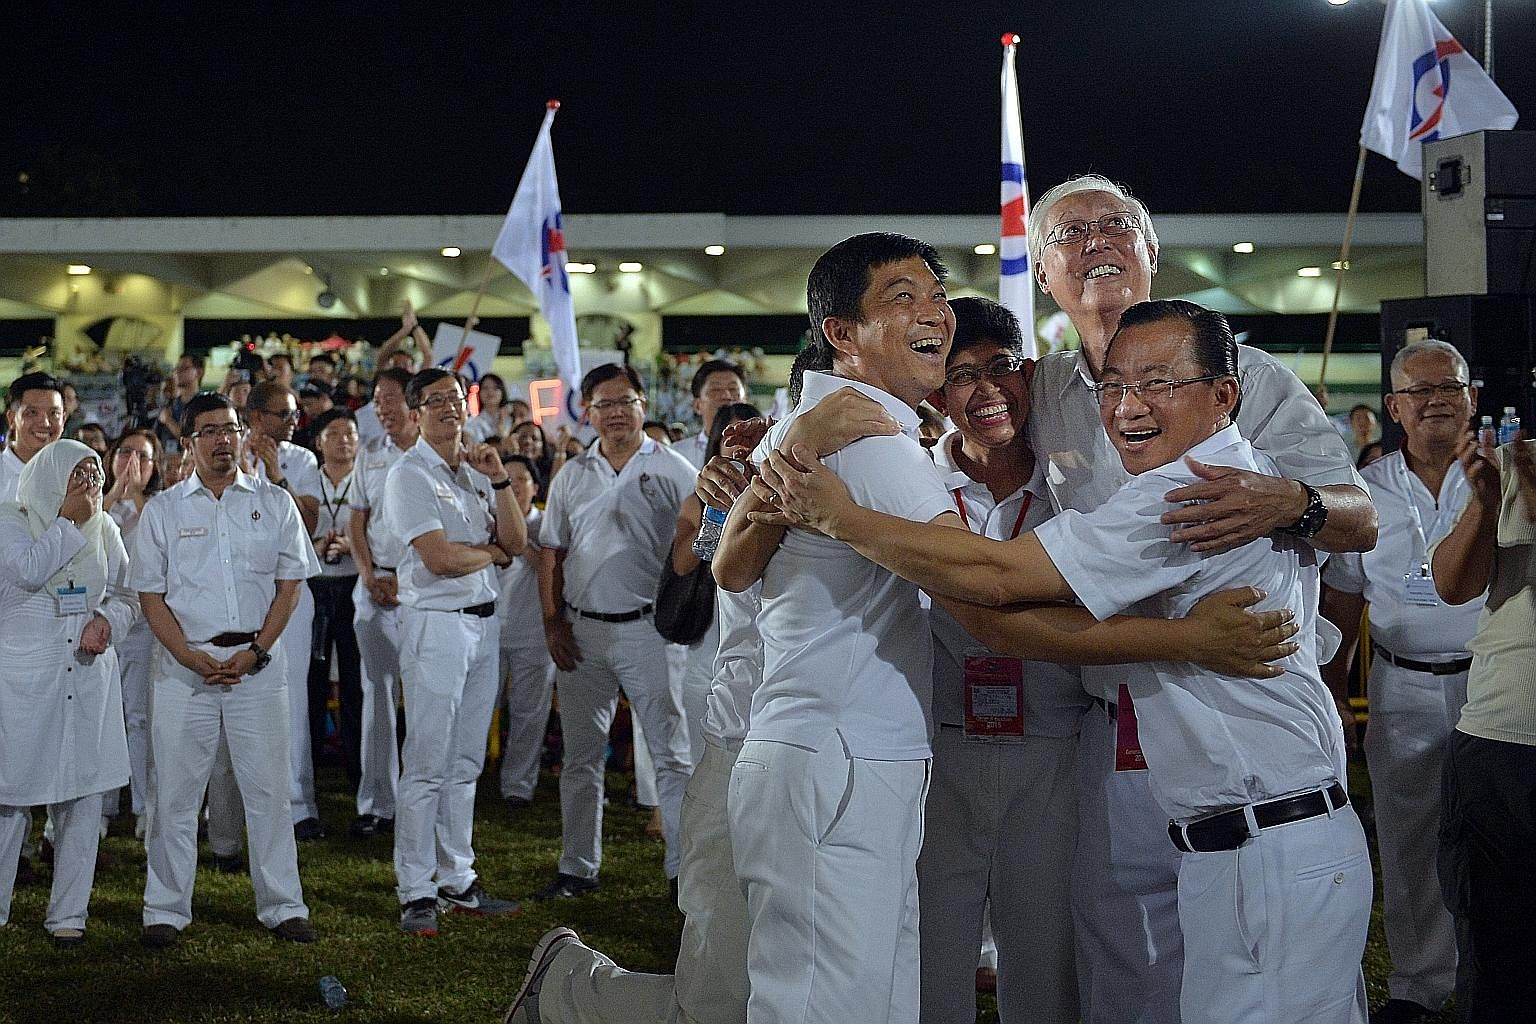 6 VICTORY HUG (far left) The People's Action Party's Marine Parade GRC team - (from left) Mr Tan Chuan-Jin, Mr Edwin Tong (hidden), Dr Fatimah Lateef, Mr Goh Chok Tong and Mr Seah Kian Peng - celebrating their win in the Sept 11 General Election afte